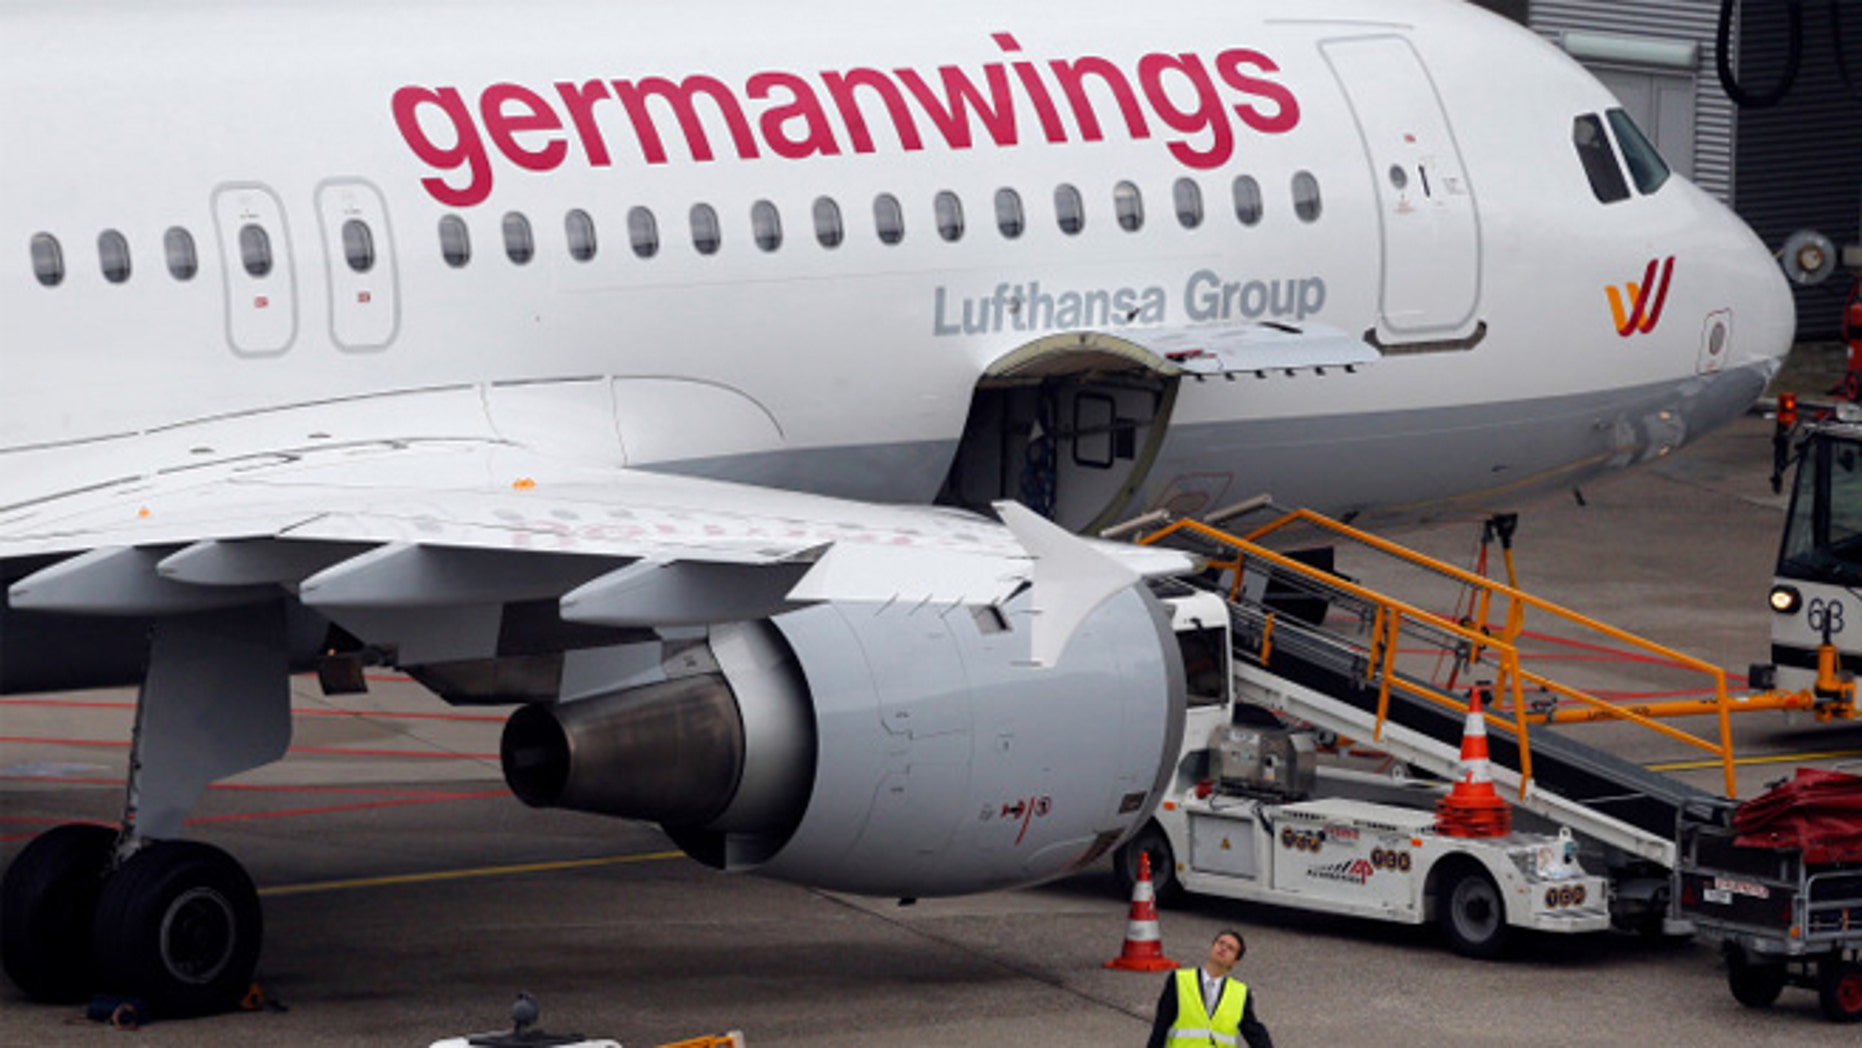 Following reports that co-pilot Andreas Lubitz locked out his fellow pilot from the cockpit, several airlines announced they will begin to enforce the U.S. rules requiring two people at the cockpit at all times.